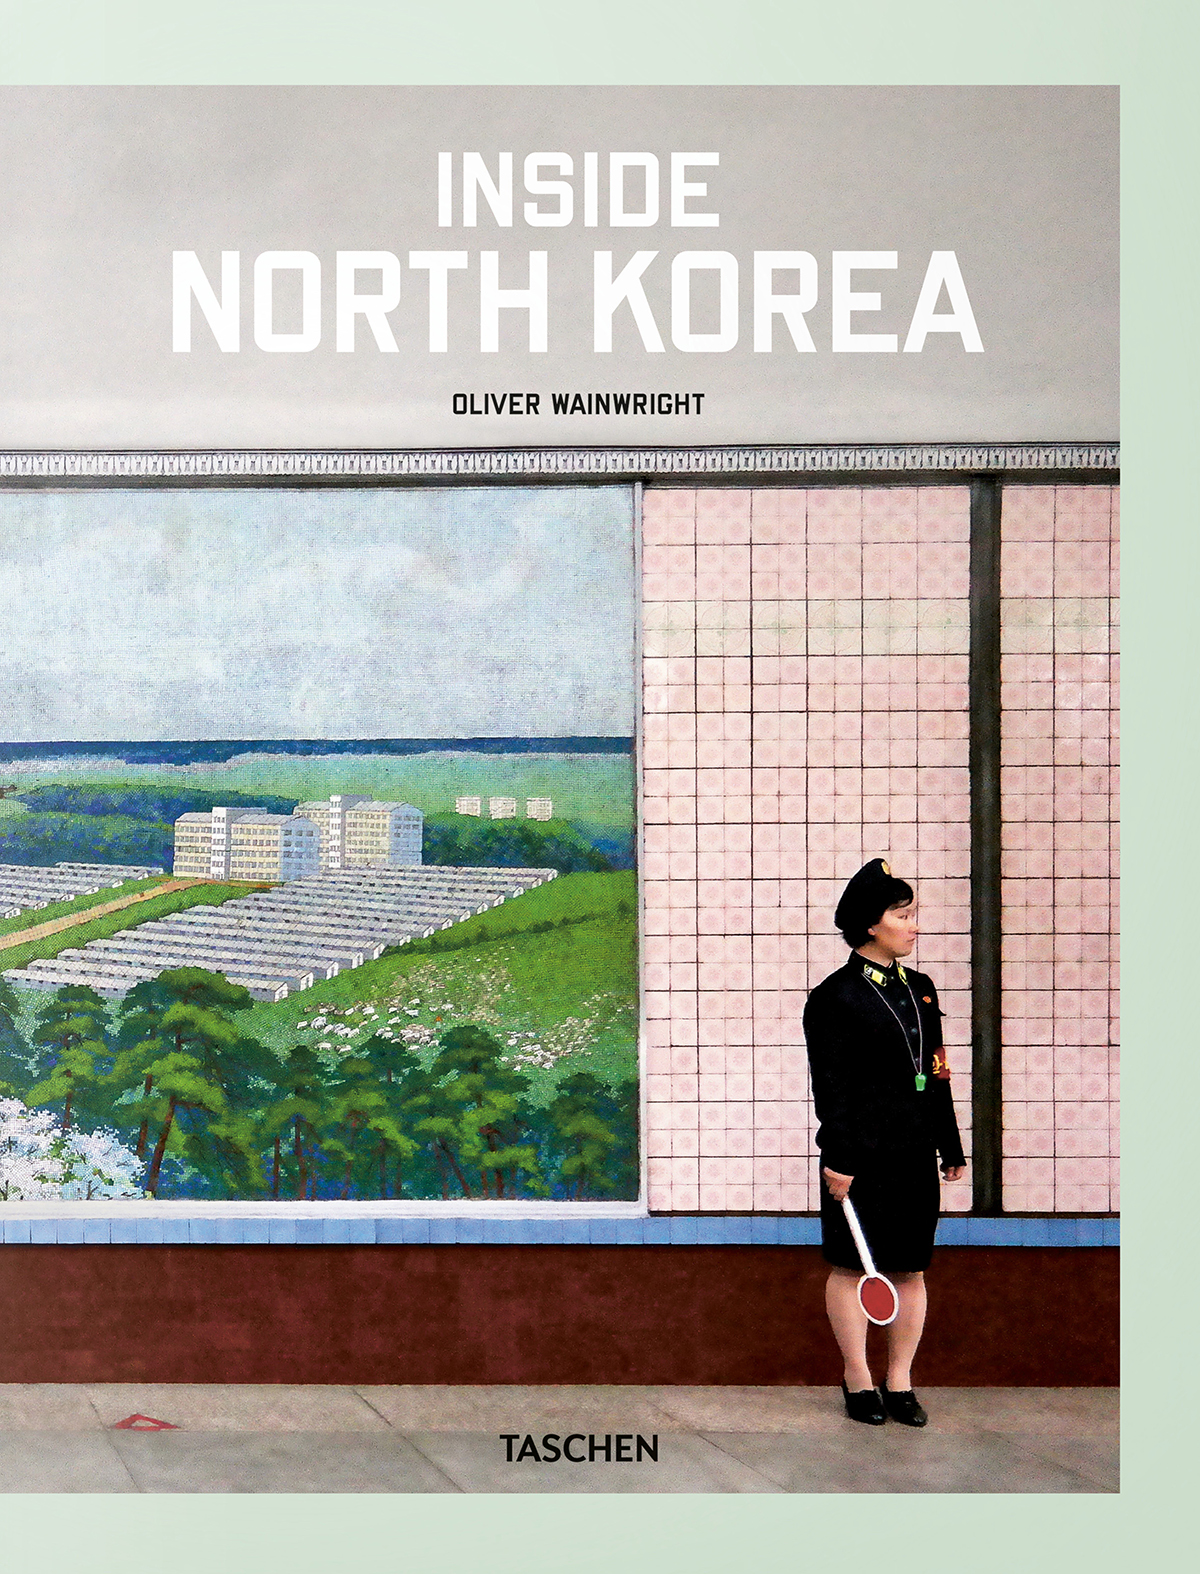 Colour scan of Insider North Korean book cover featuring a government worker standing in front of a pink tiled wall and mural.